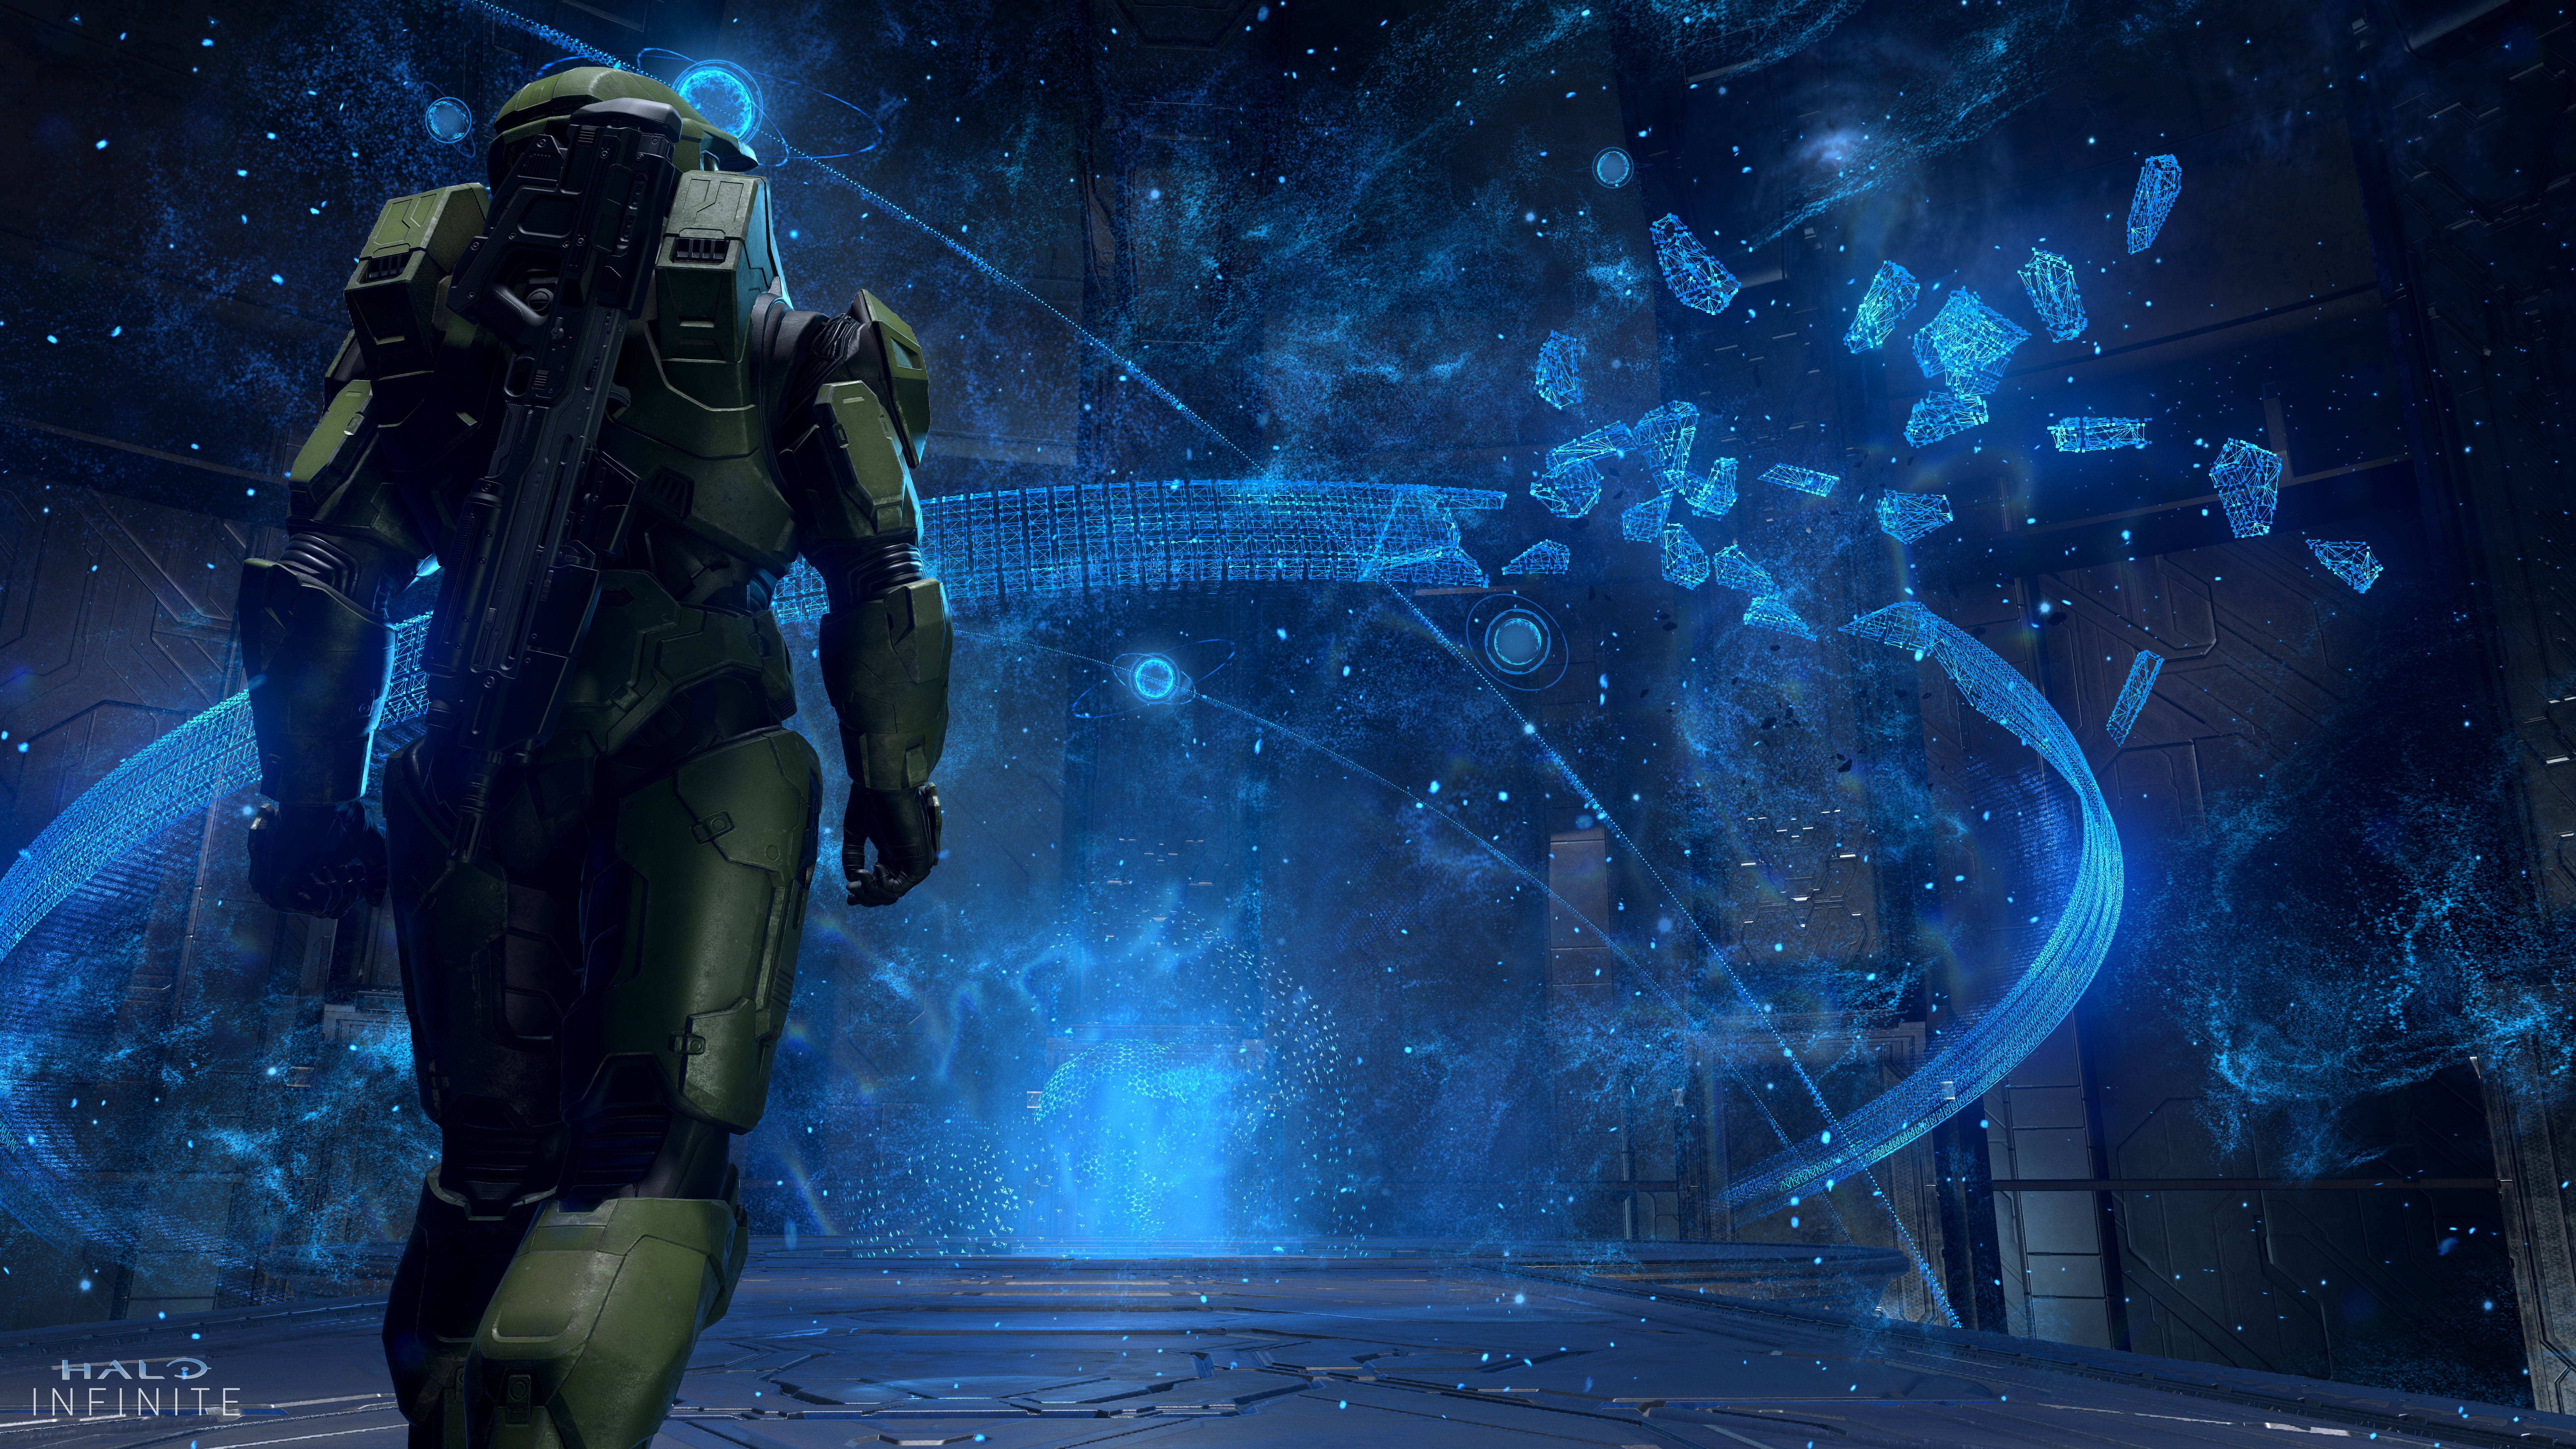 Halo 6 8k Hd Games 4k Wallpapers Images Backgrounds